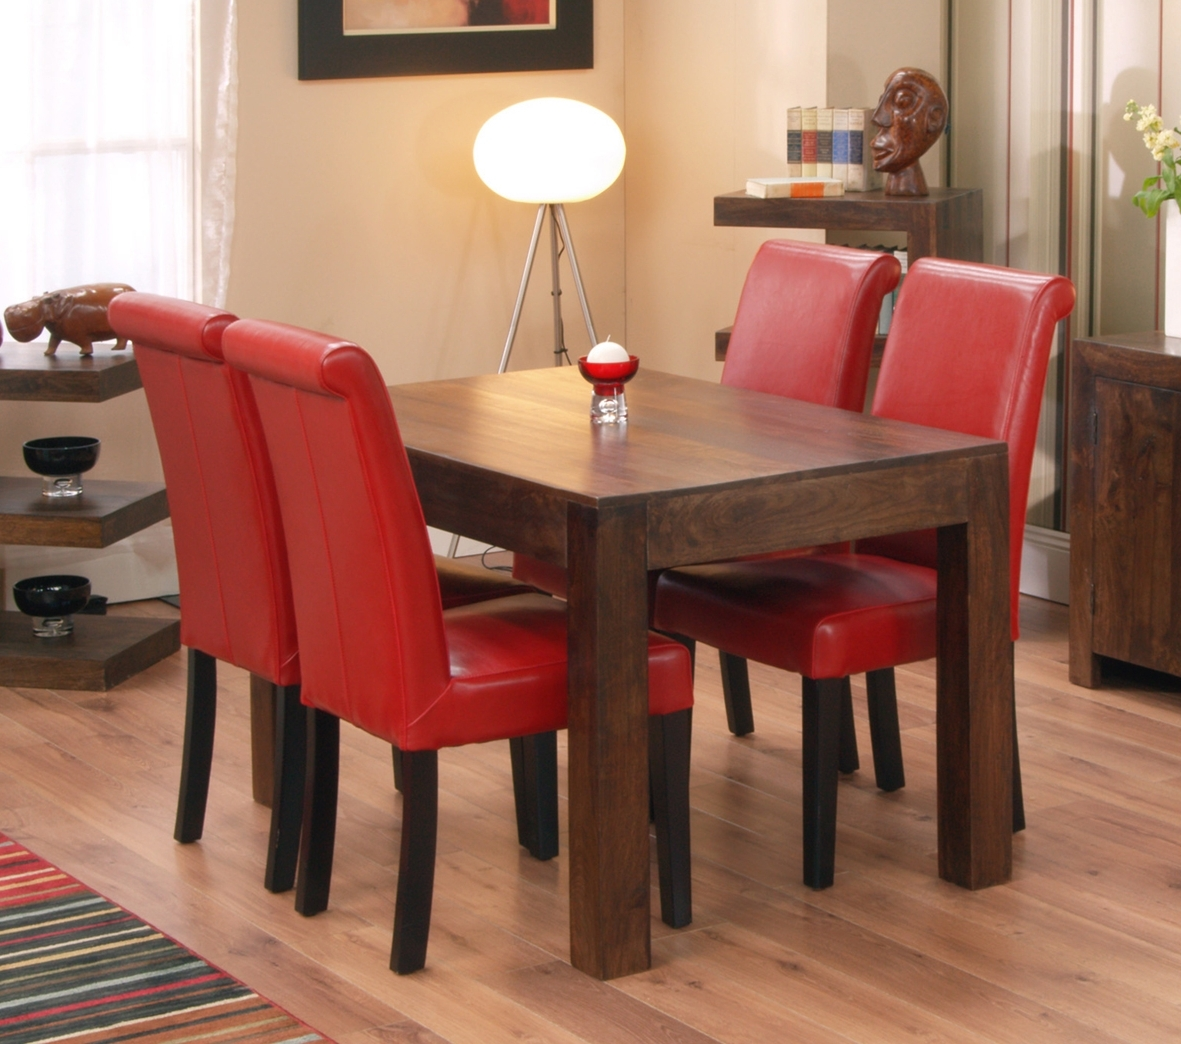 Favorite Small Dining Tables And Chairs Intended For Dining Tables: Glamorous Small Dining Table Sets Small Dining Sets (View 8 of 25)